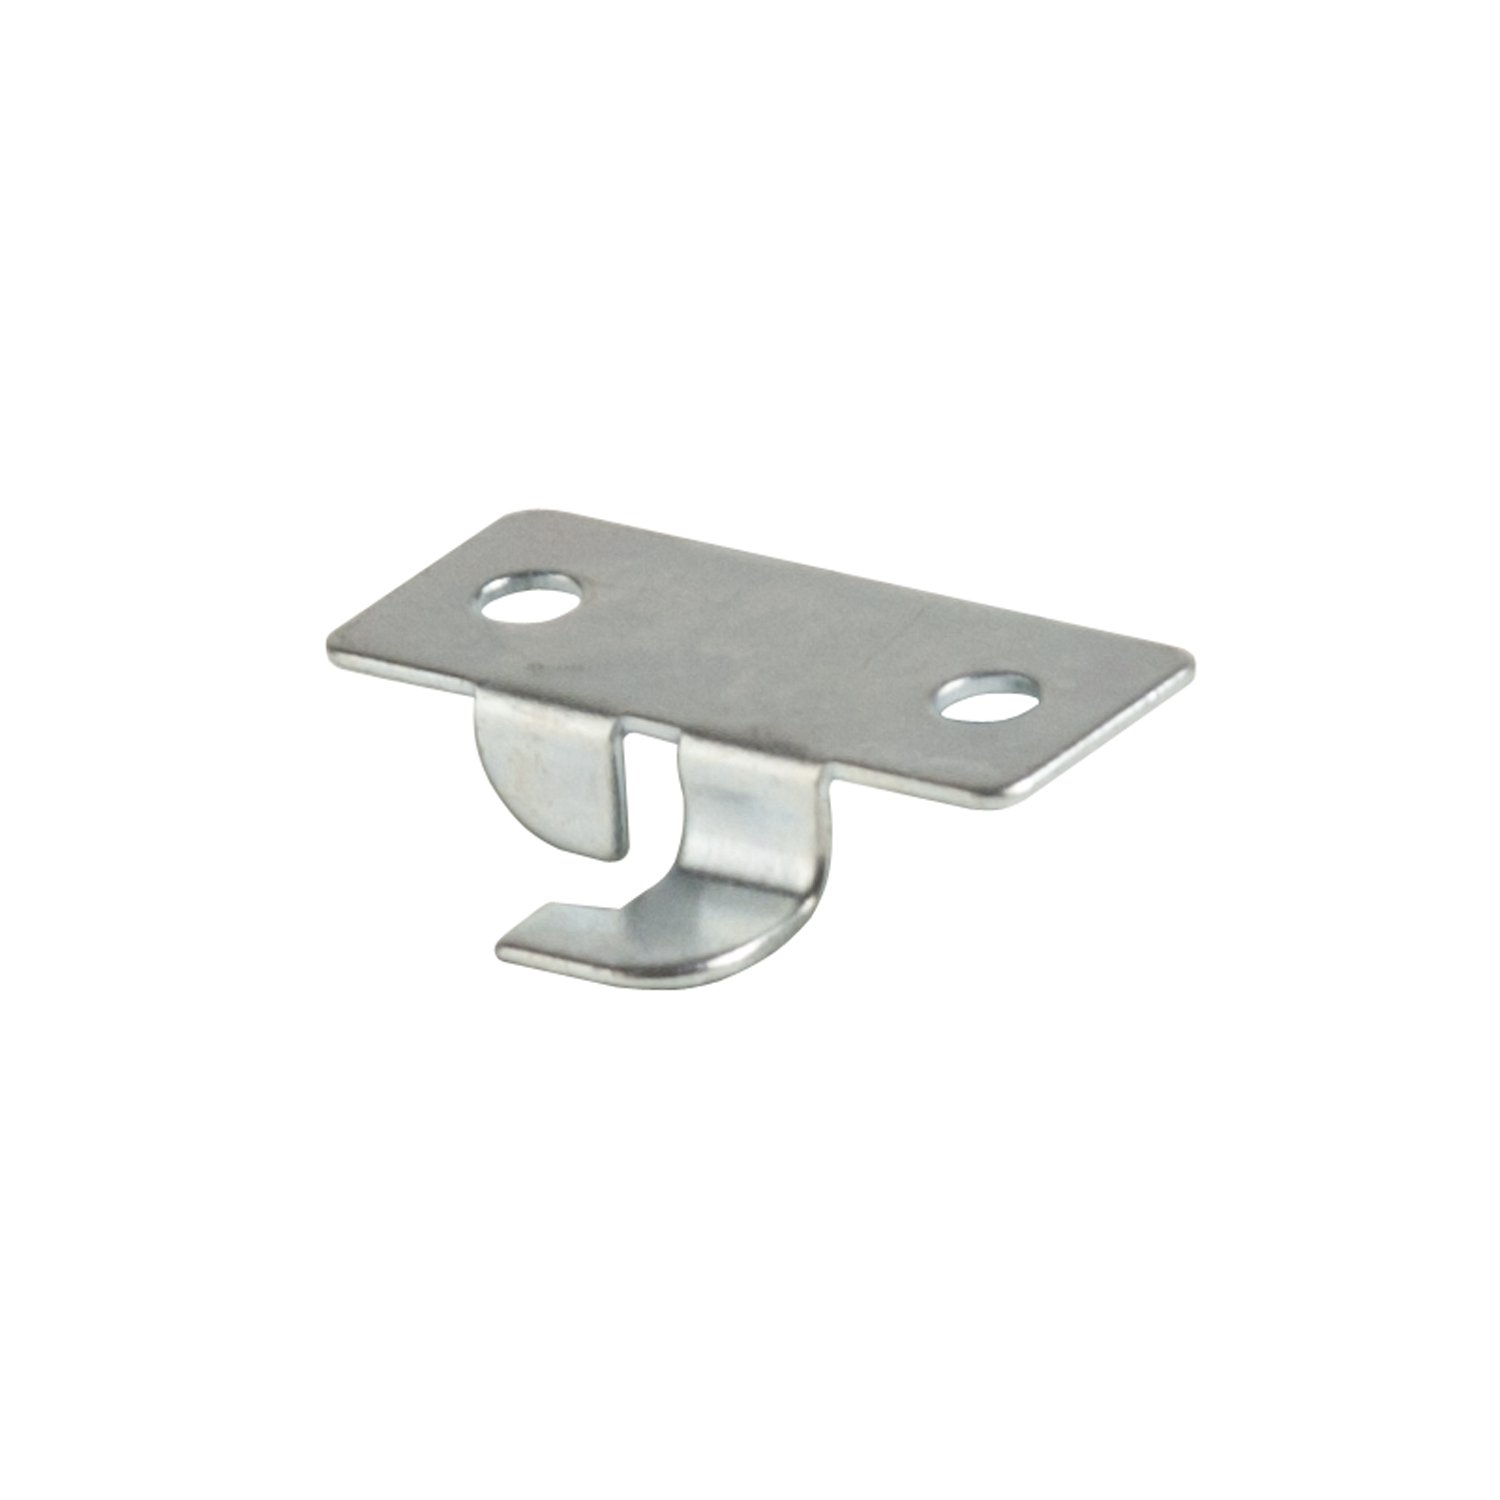 Econoco GLKCP50 Deluxe Style Snap-in Center Shelf Rest, Metal, Zinc (Pack of 50)